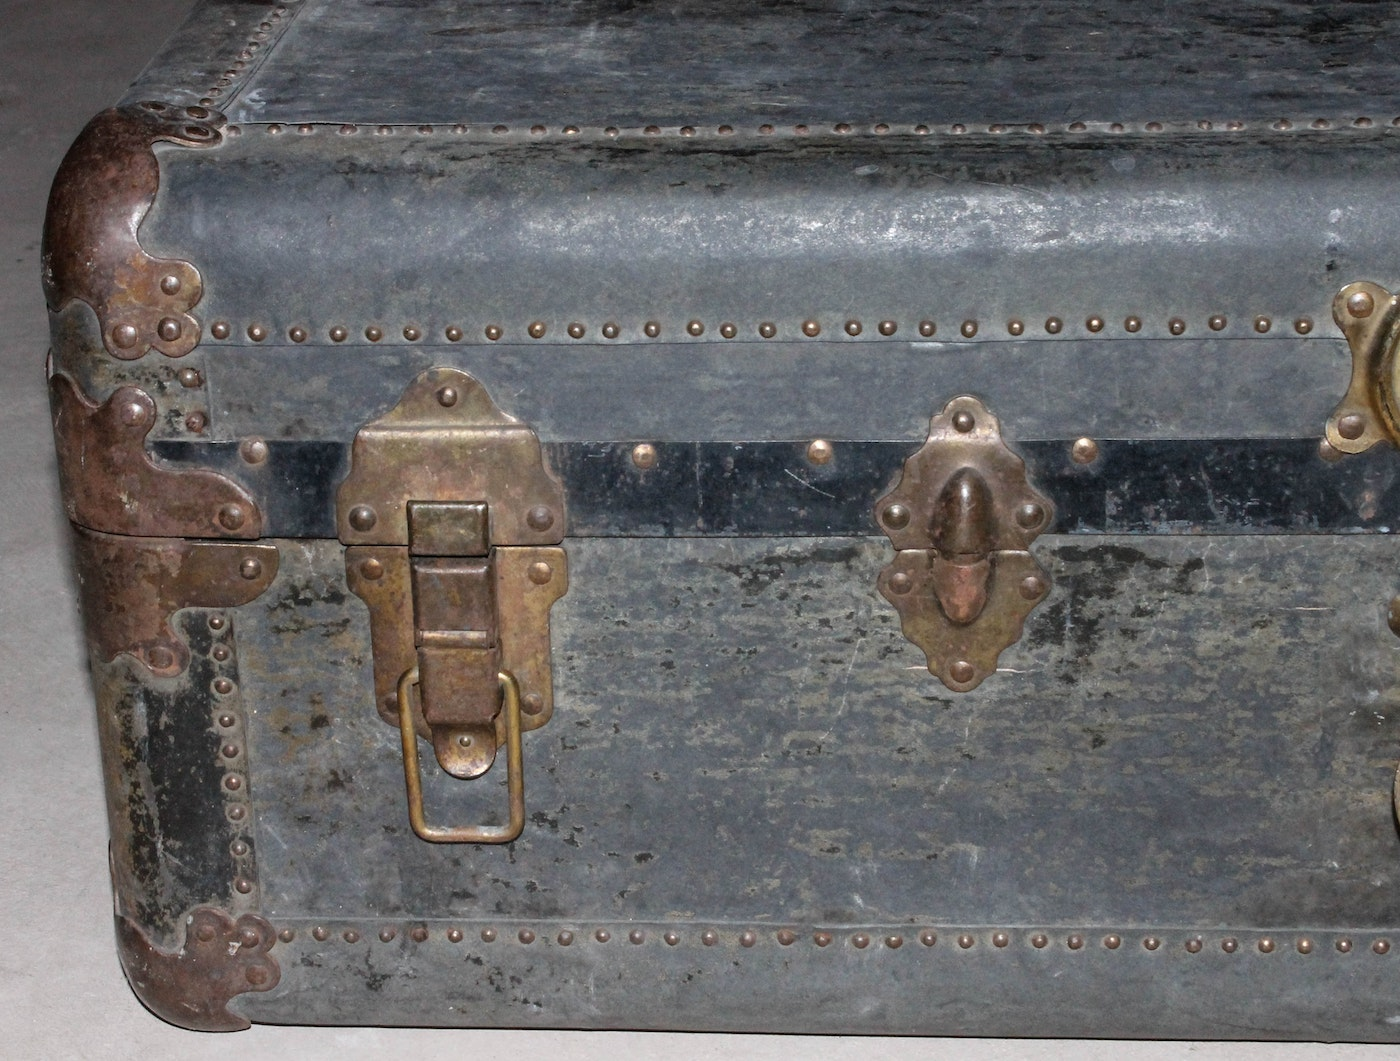 Vintage steamer trunk by the d e rose trunk co ebth for Ace motors topeka ks